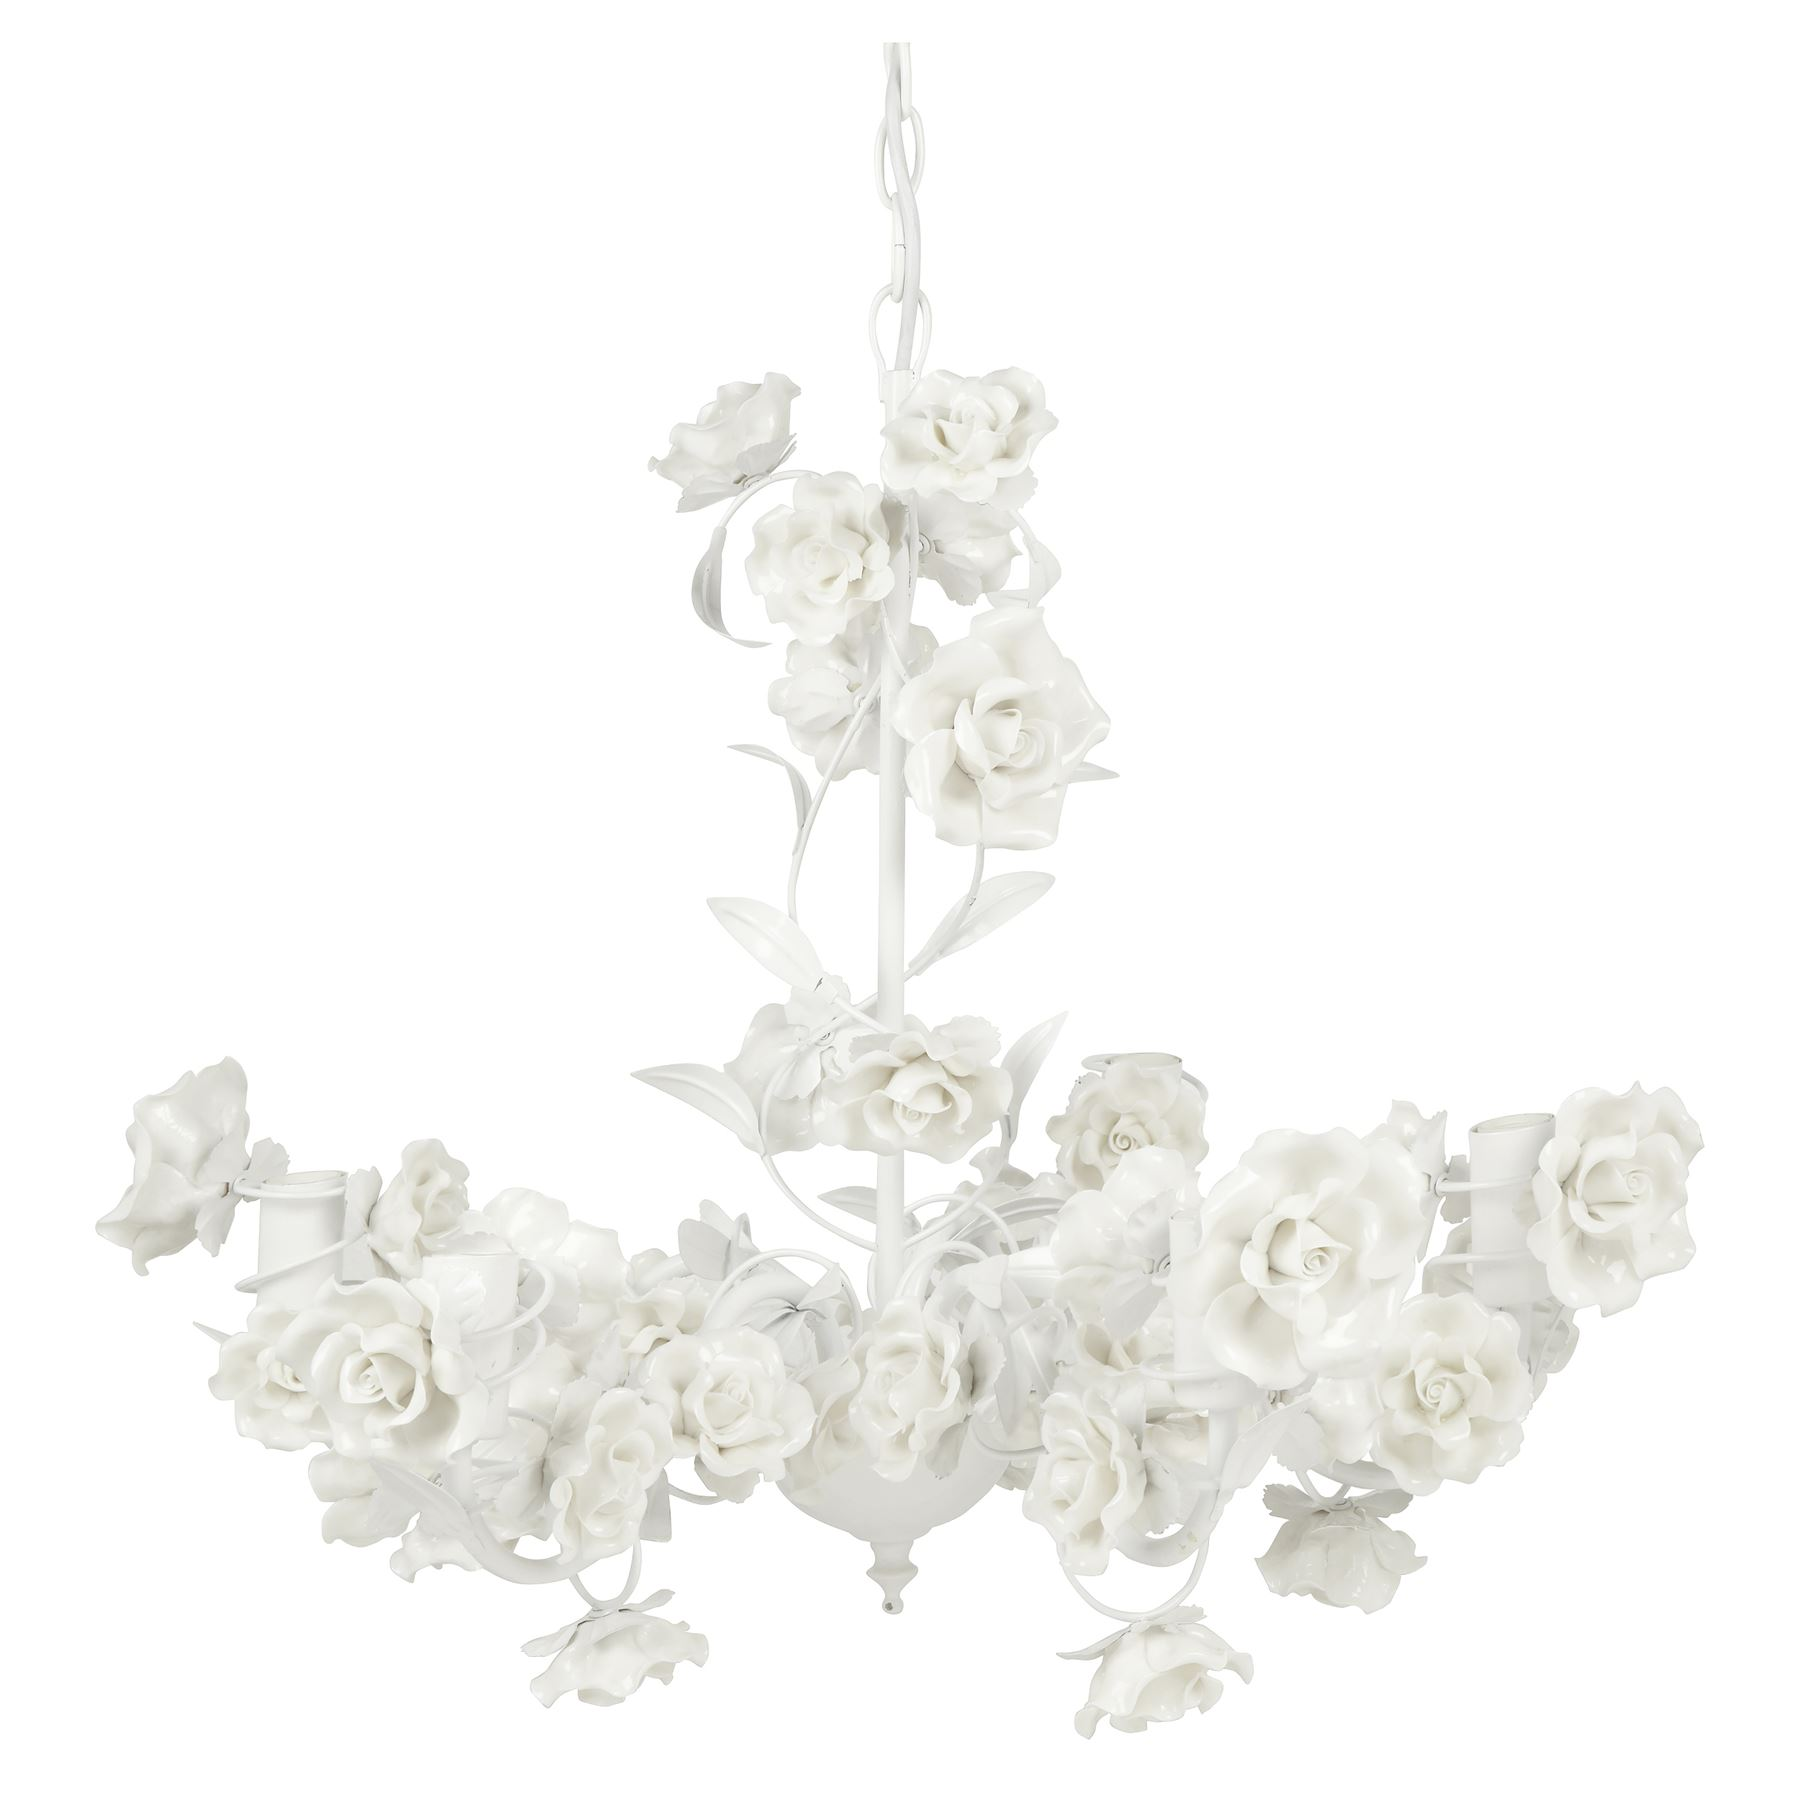 Primrose laura ashley chandelier ornament floral flower ceiling item specifics arubaitofo Images